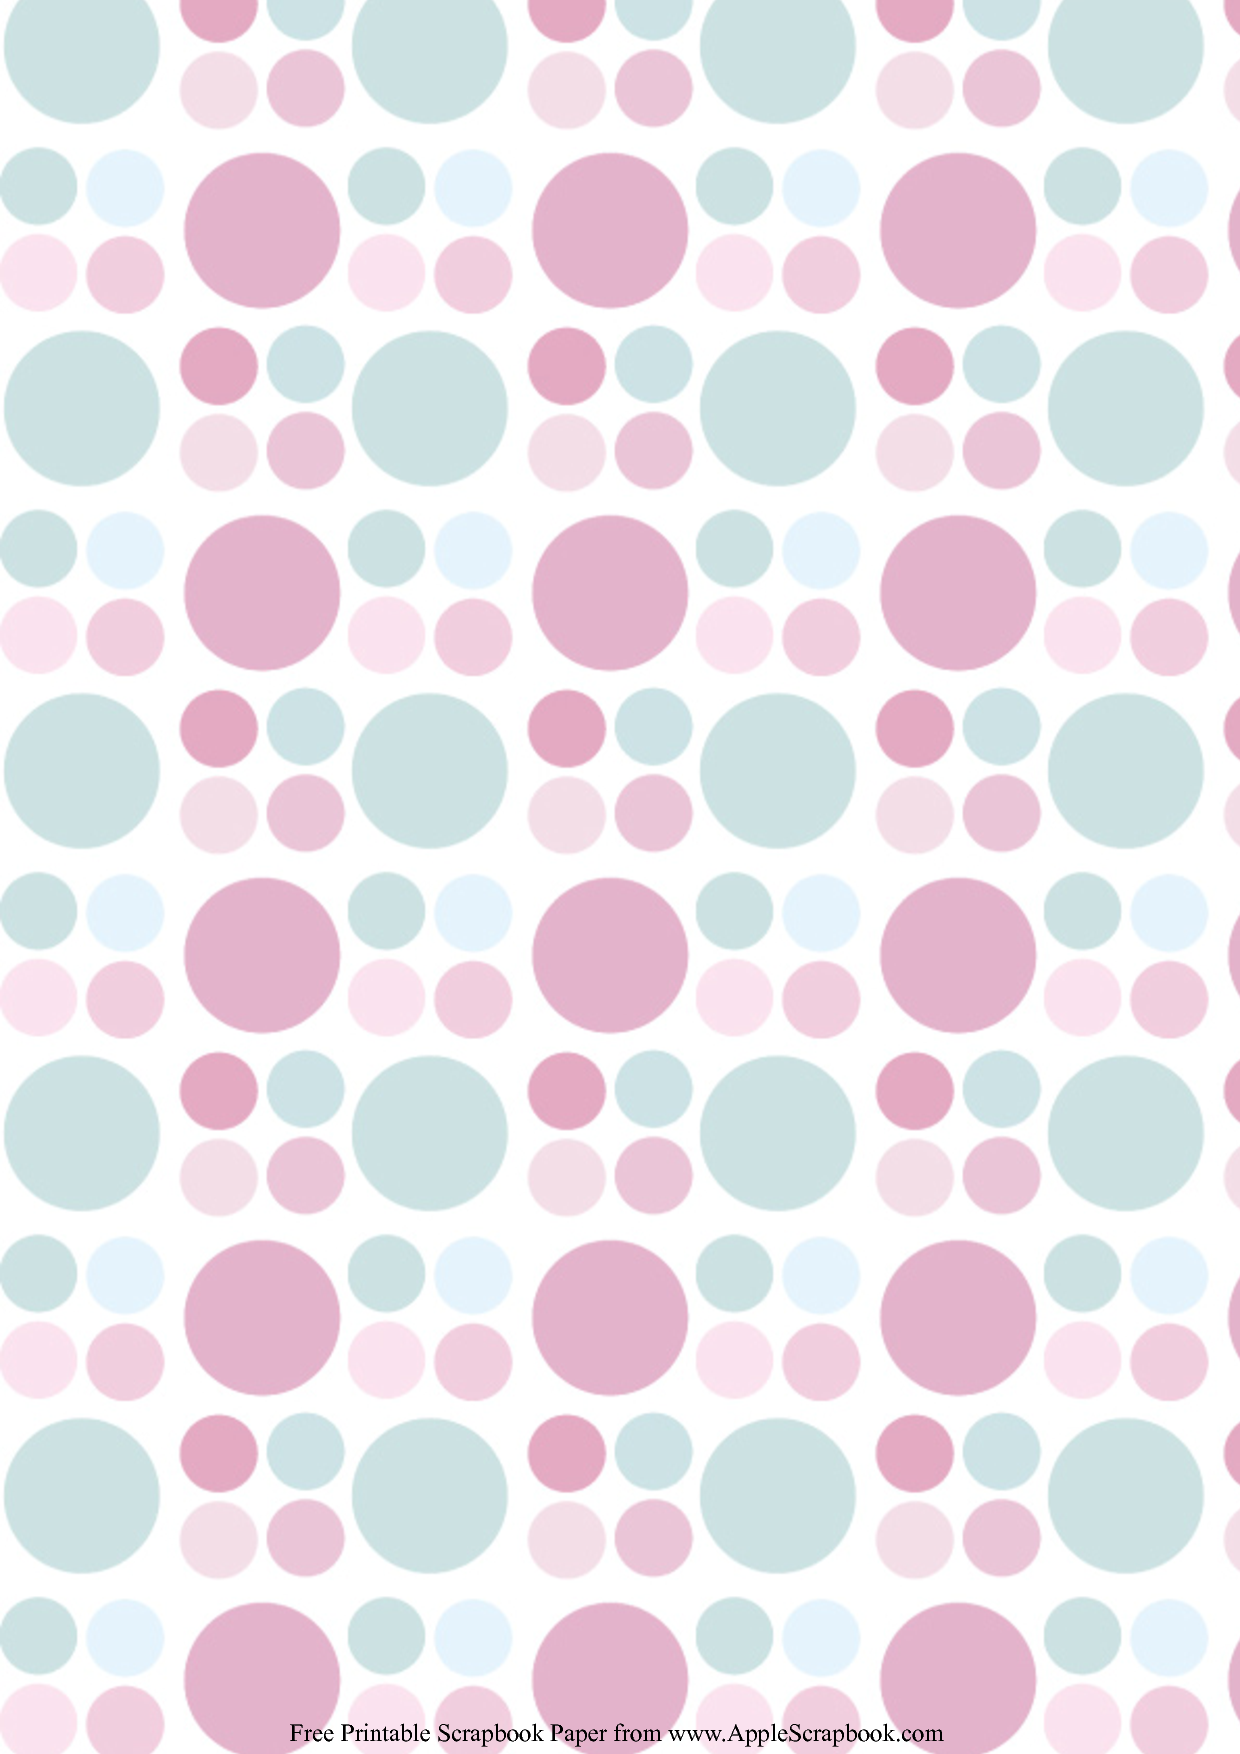 8 Images of Printable Scrapbook Paper